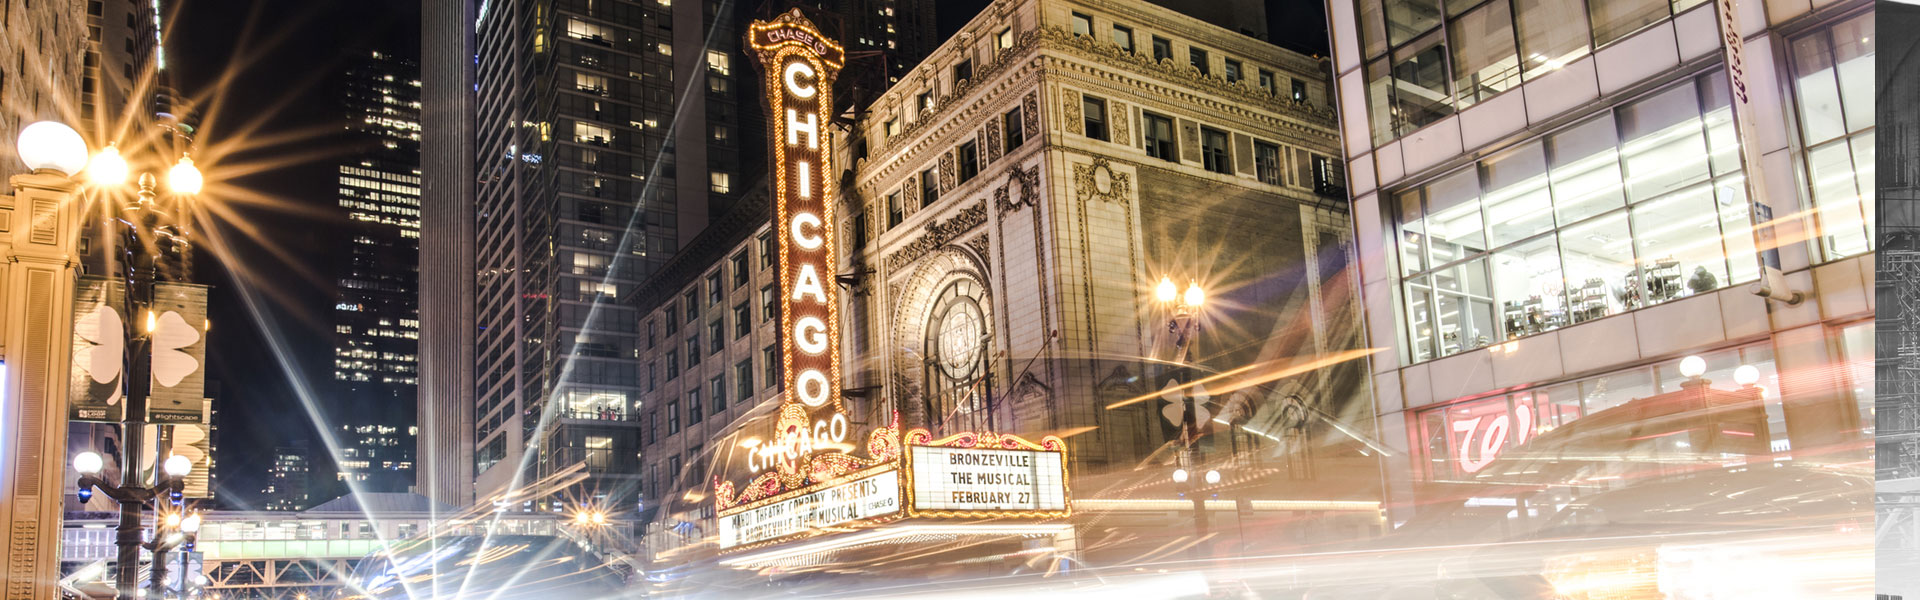 SYDCON is among the top custom software development firms in Chicago